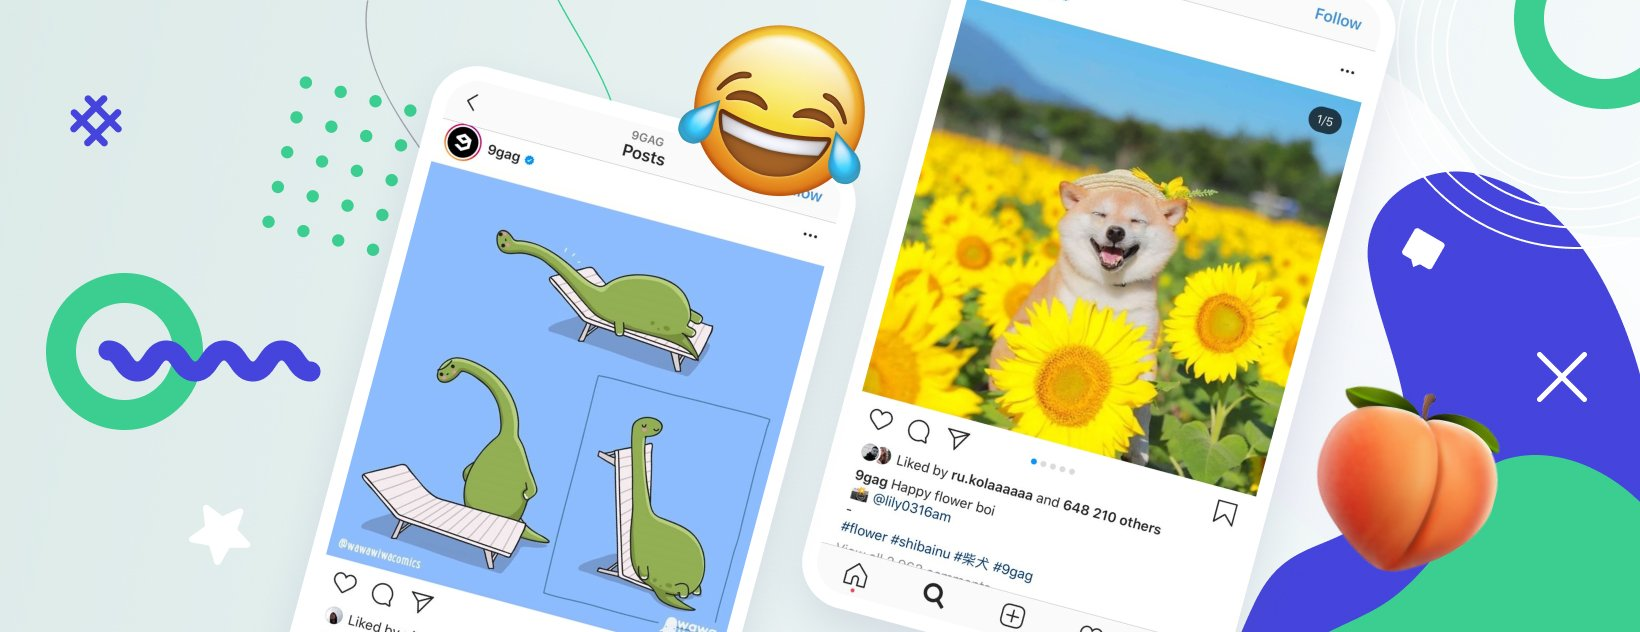 Instagram Memes: 6 Hot Content Ideas for 2020